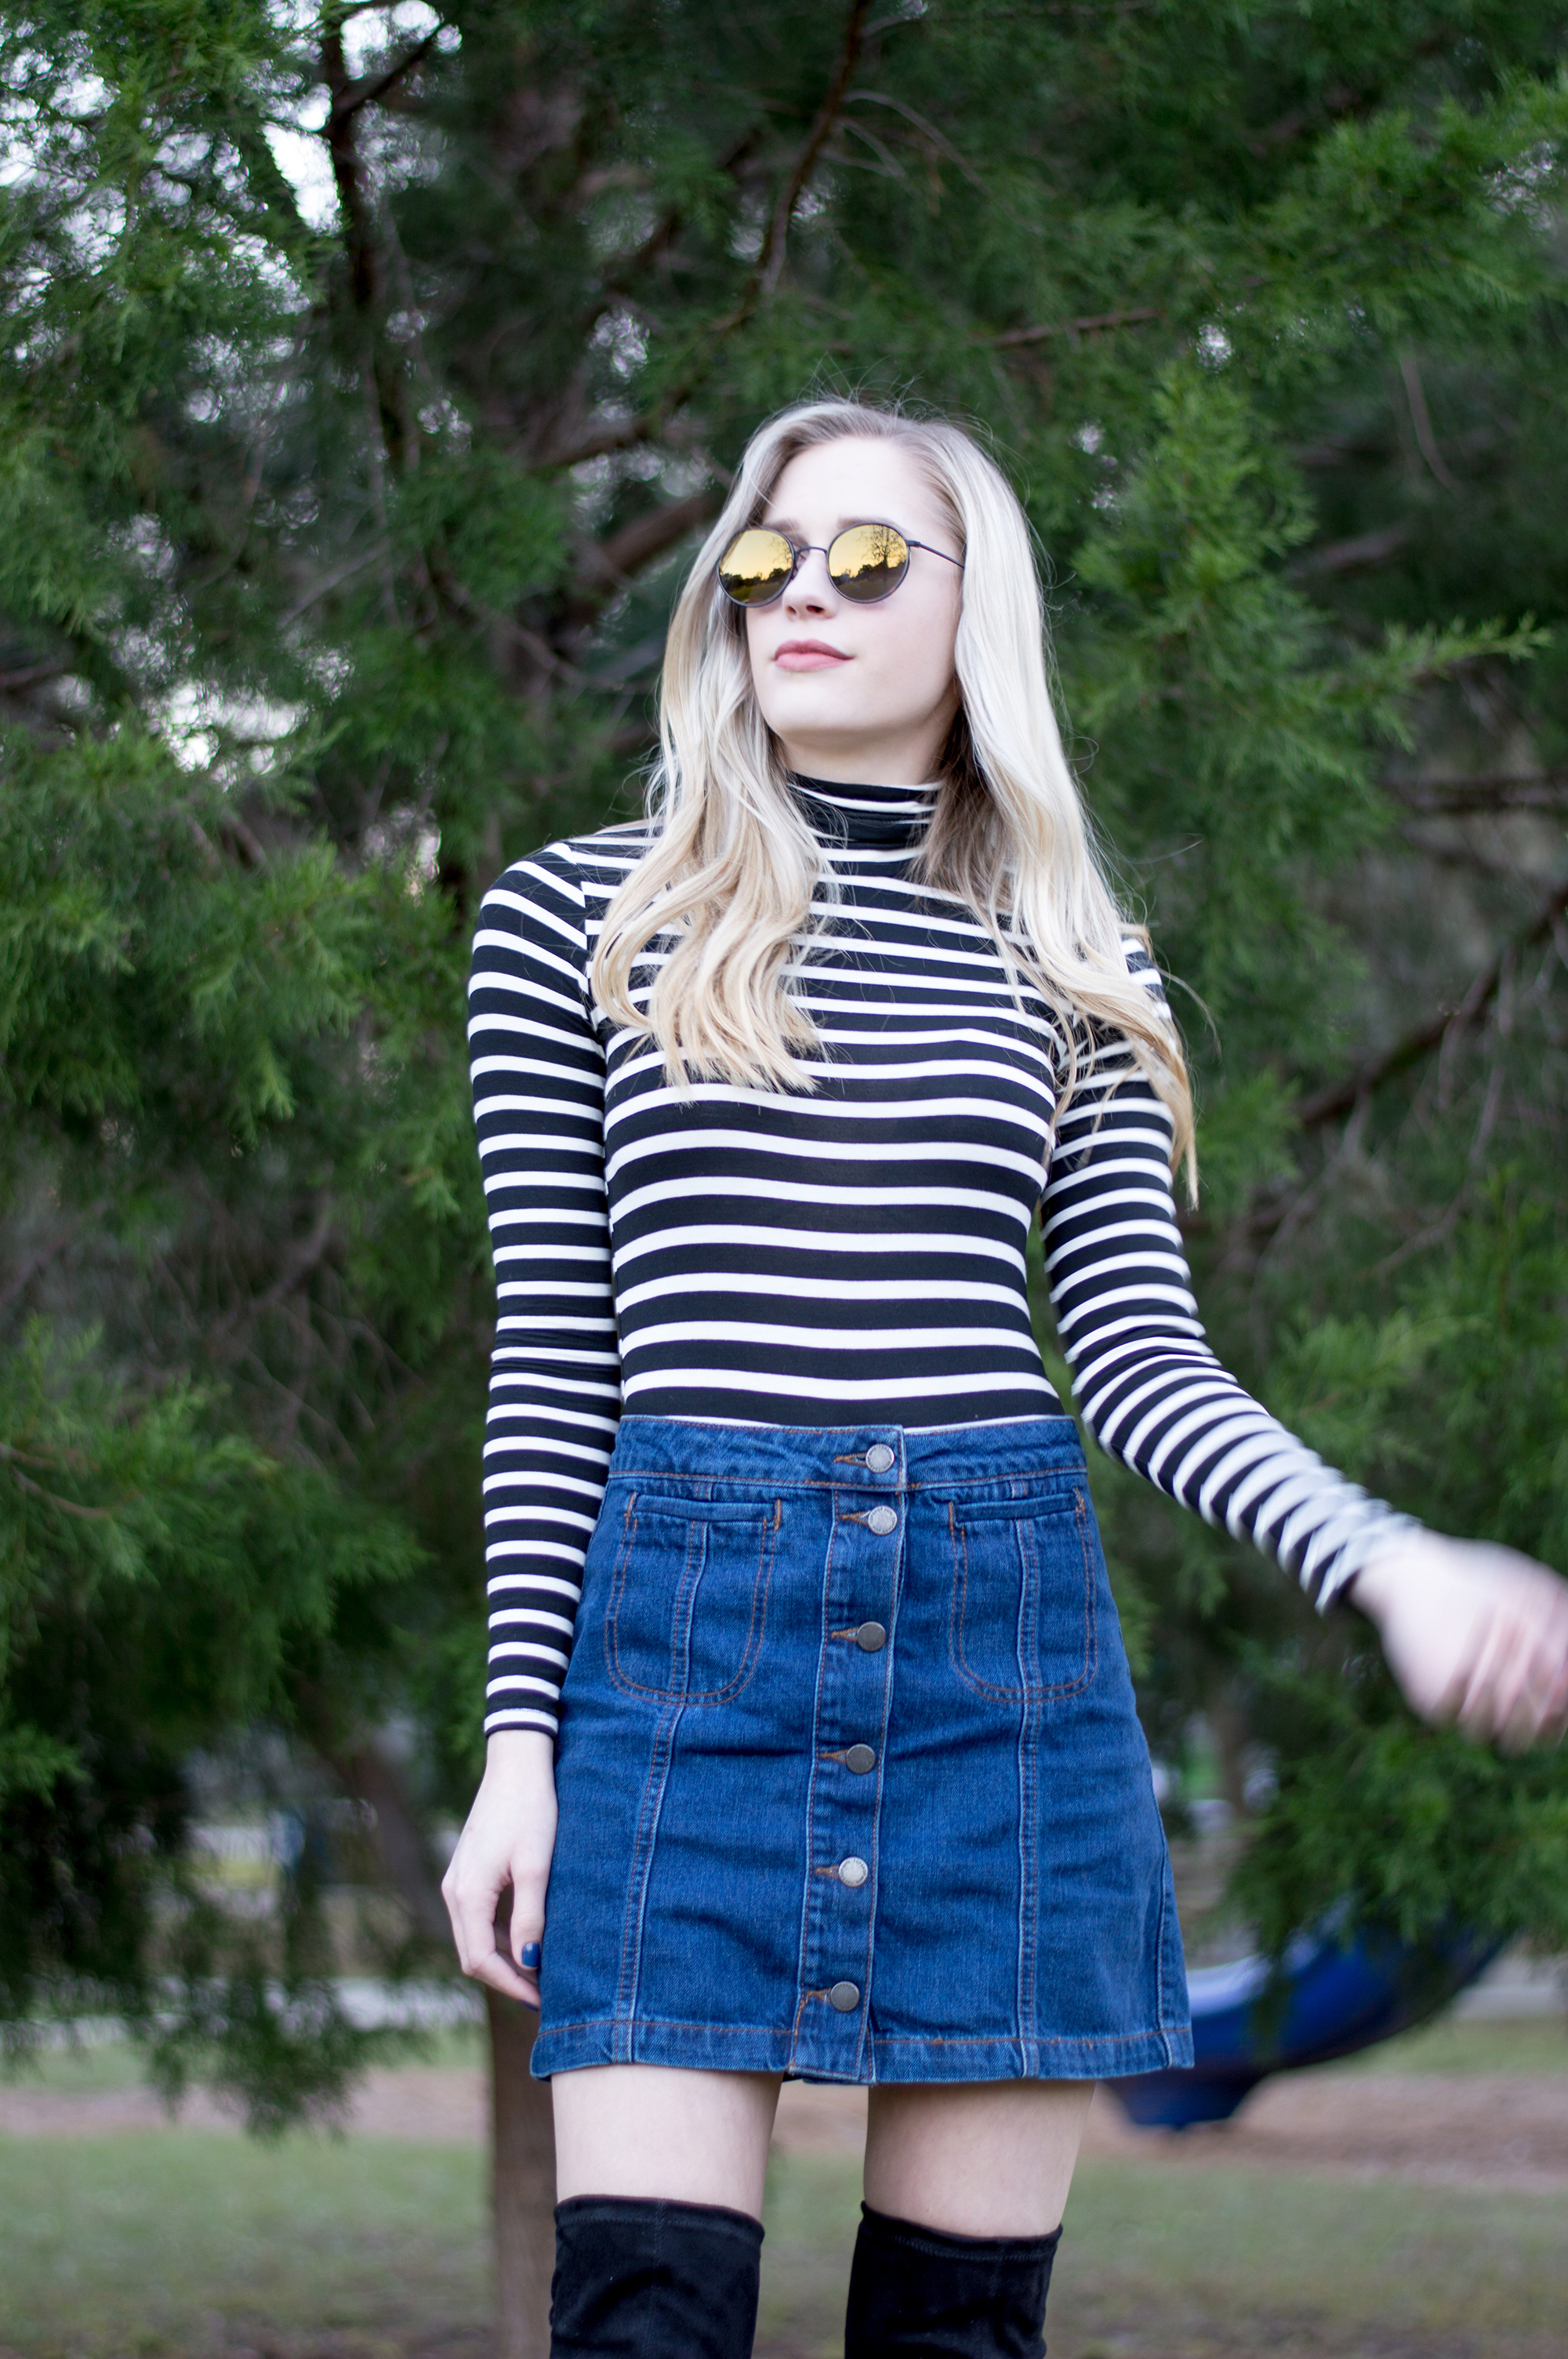 styelled_blog_fashion_lifestyle_beauty_style_blogger_topshop_forever_21_denim_skirt_striped_turtleneck_diff_eyewear_winter_style_fall_sweater_weather_over_the_knee_boots_08